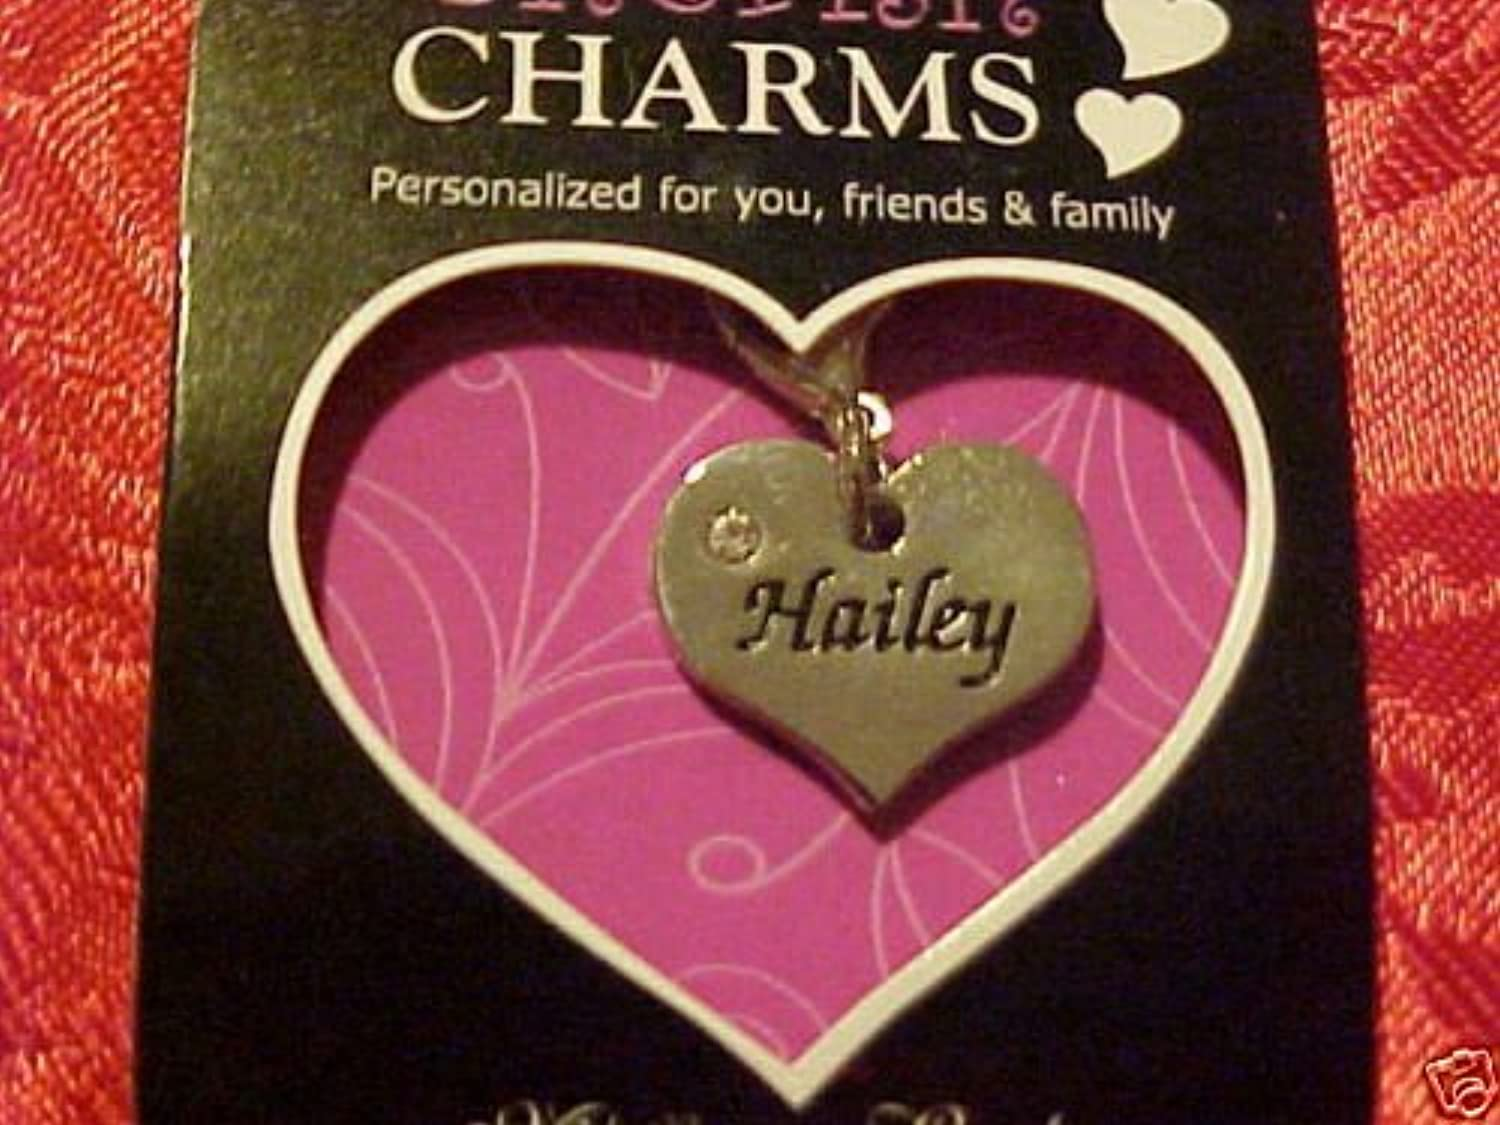 Cherish PersonalizedチャームHaley